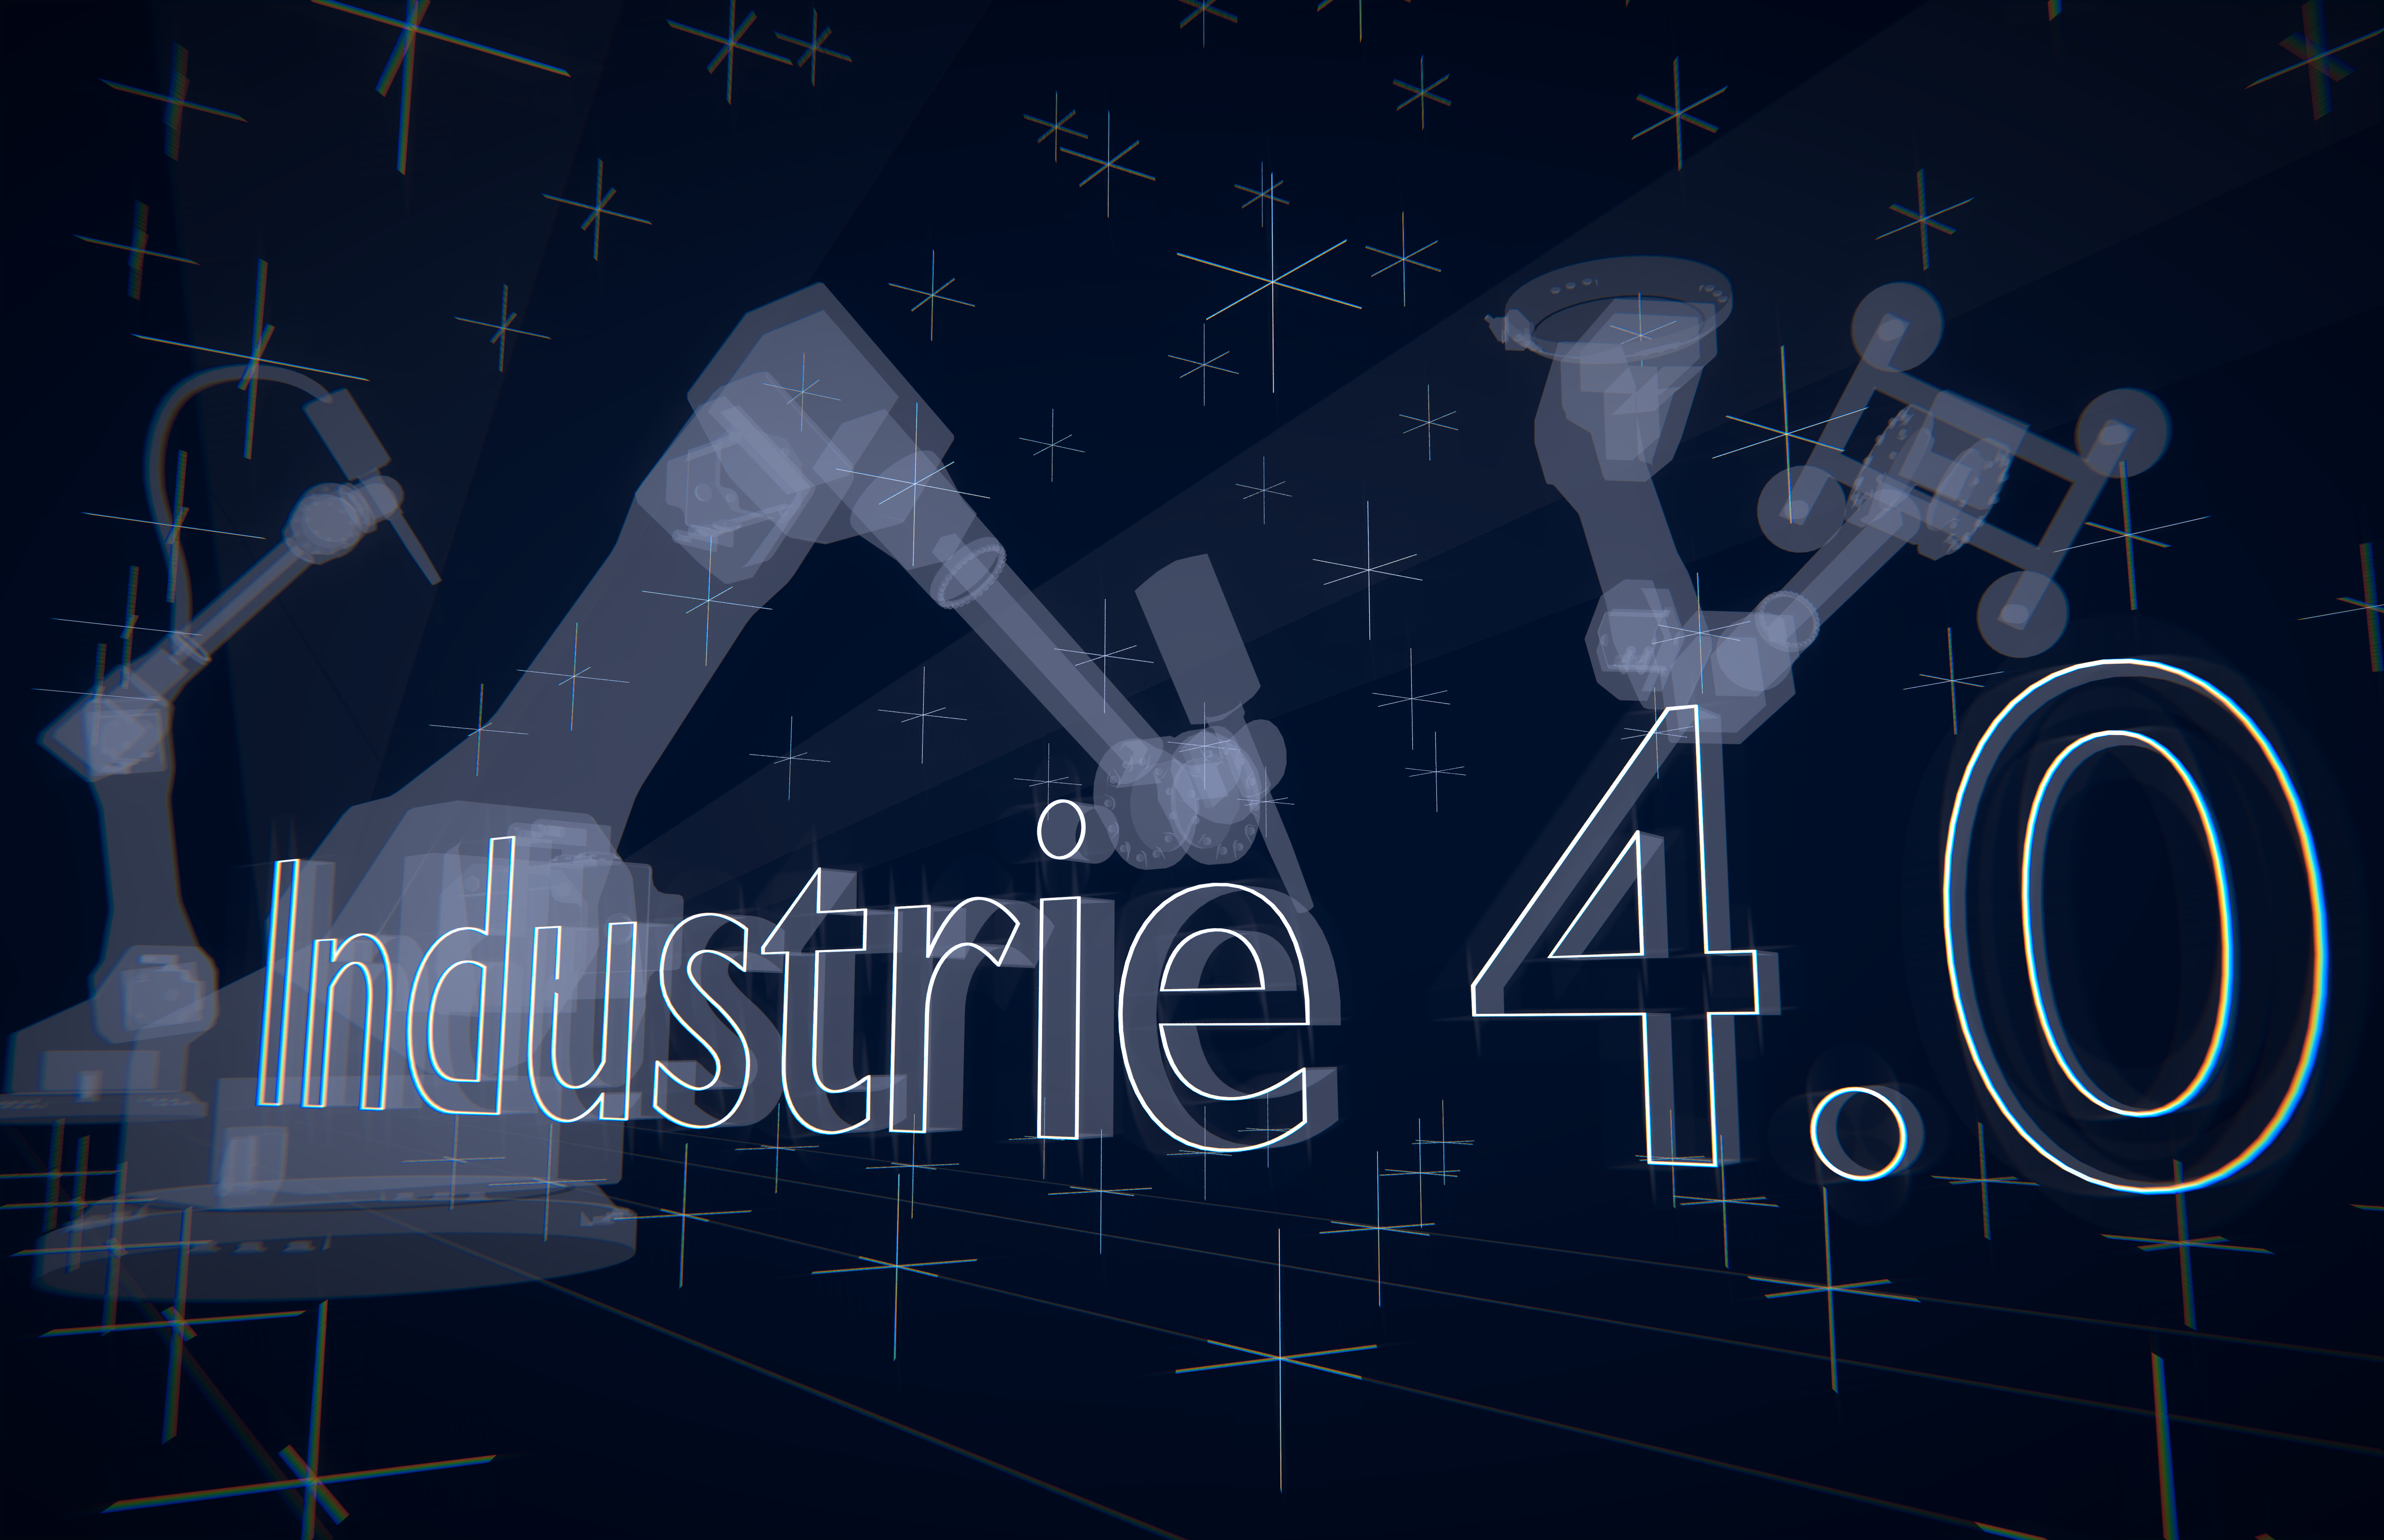 Industrie 4.0 Image